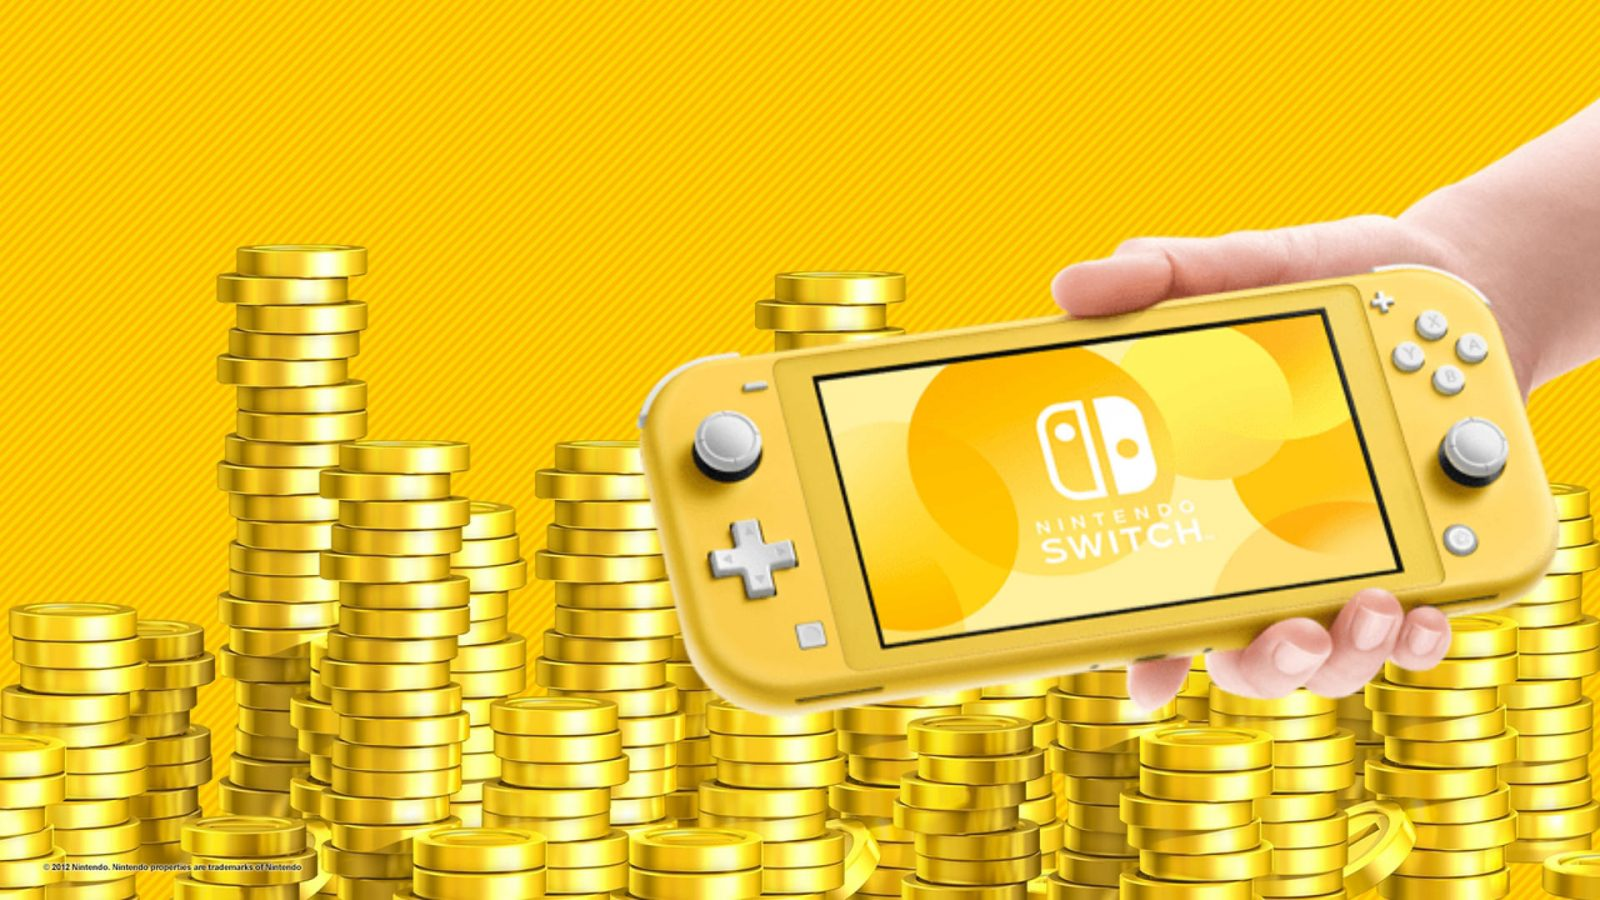 Nintendo Switch Cleans Up Over Thanksgiving With Its Best Sales Week to Date